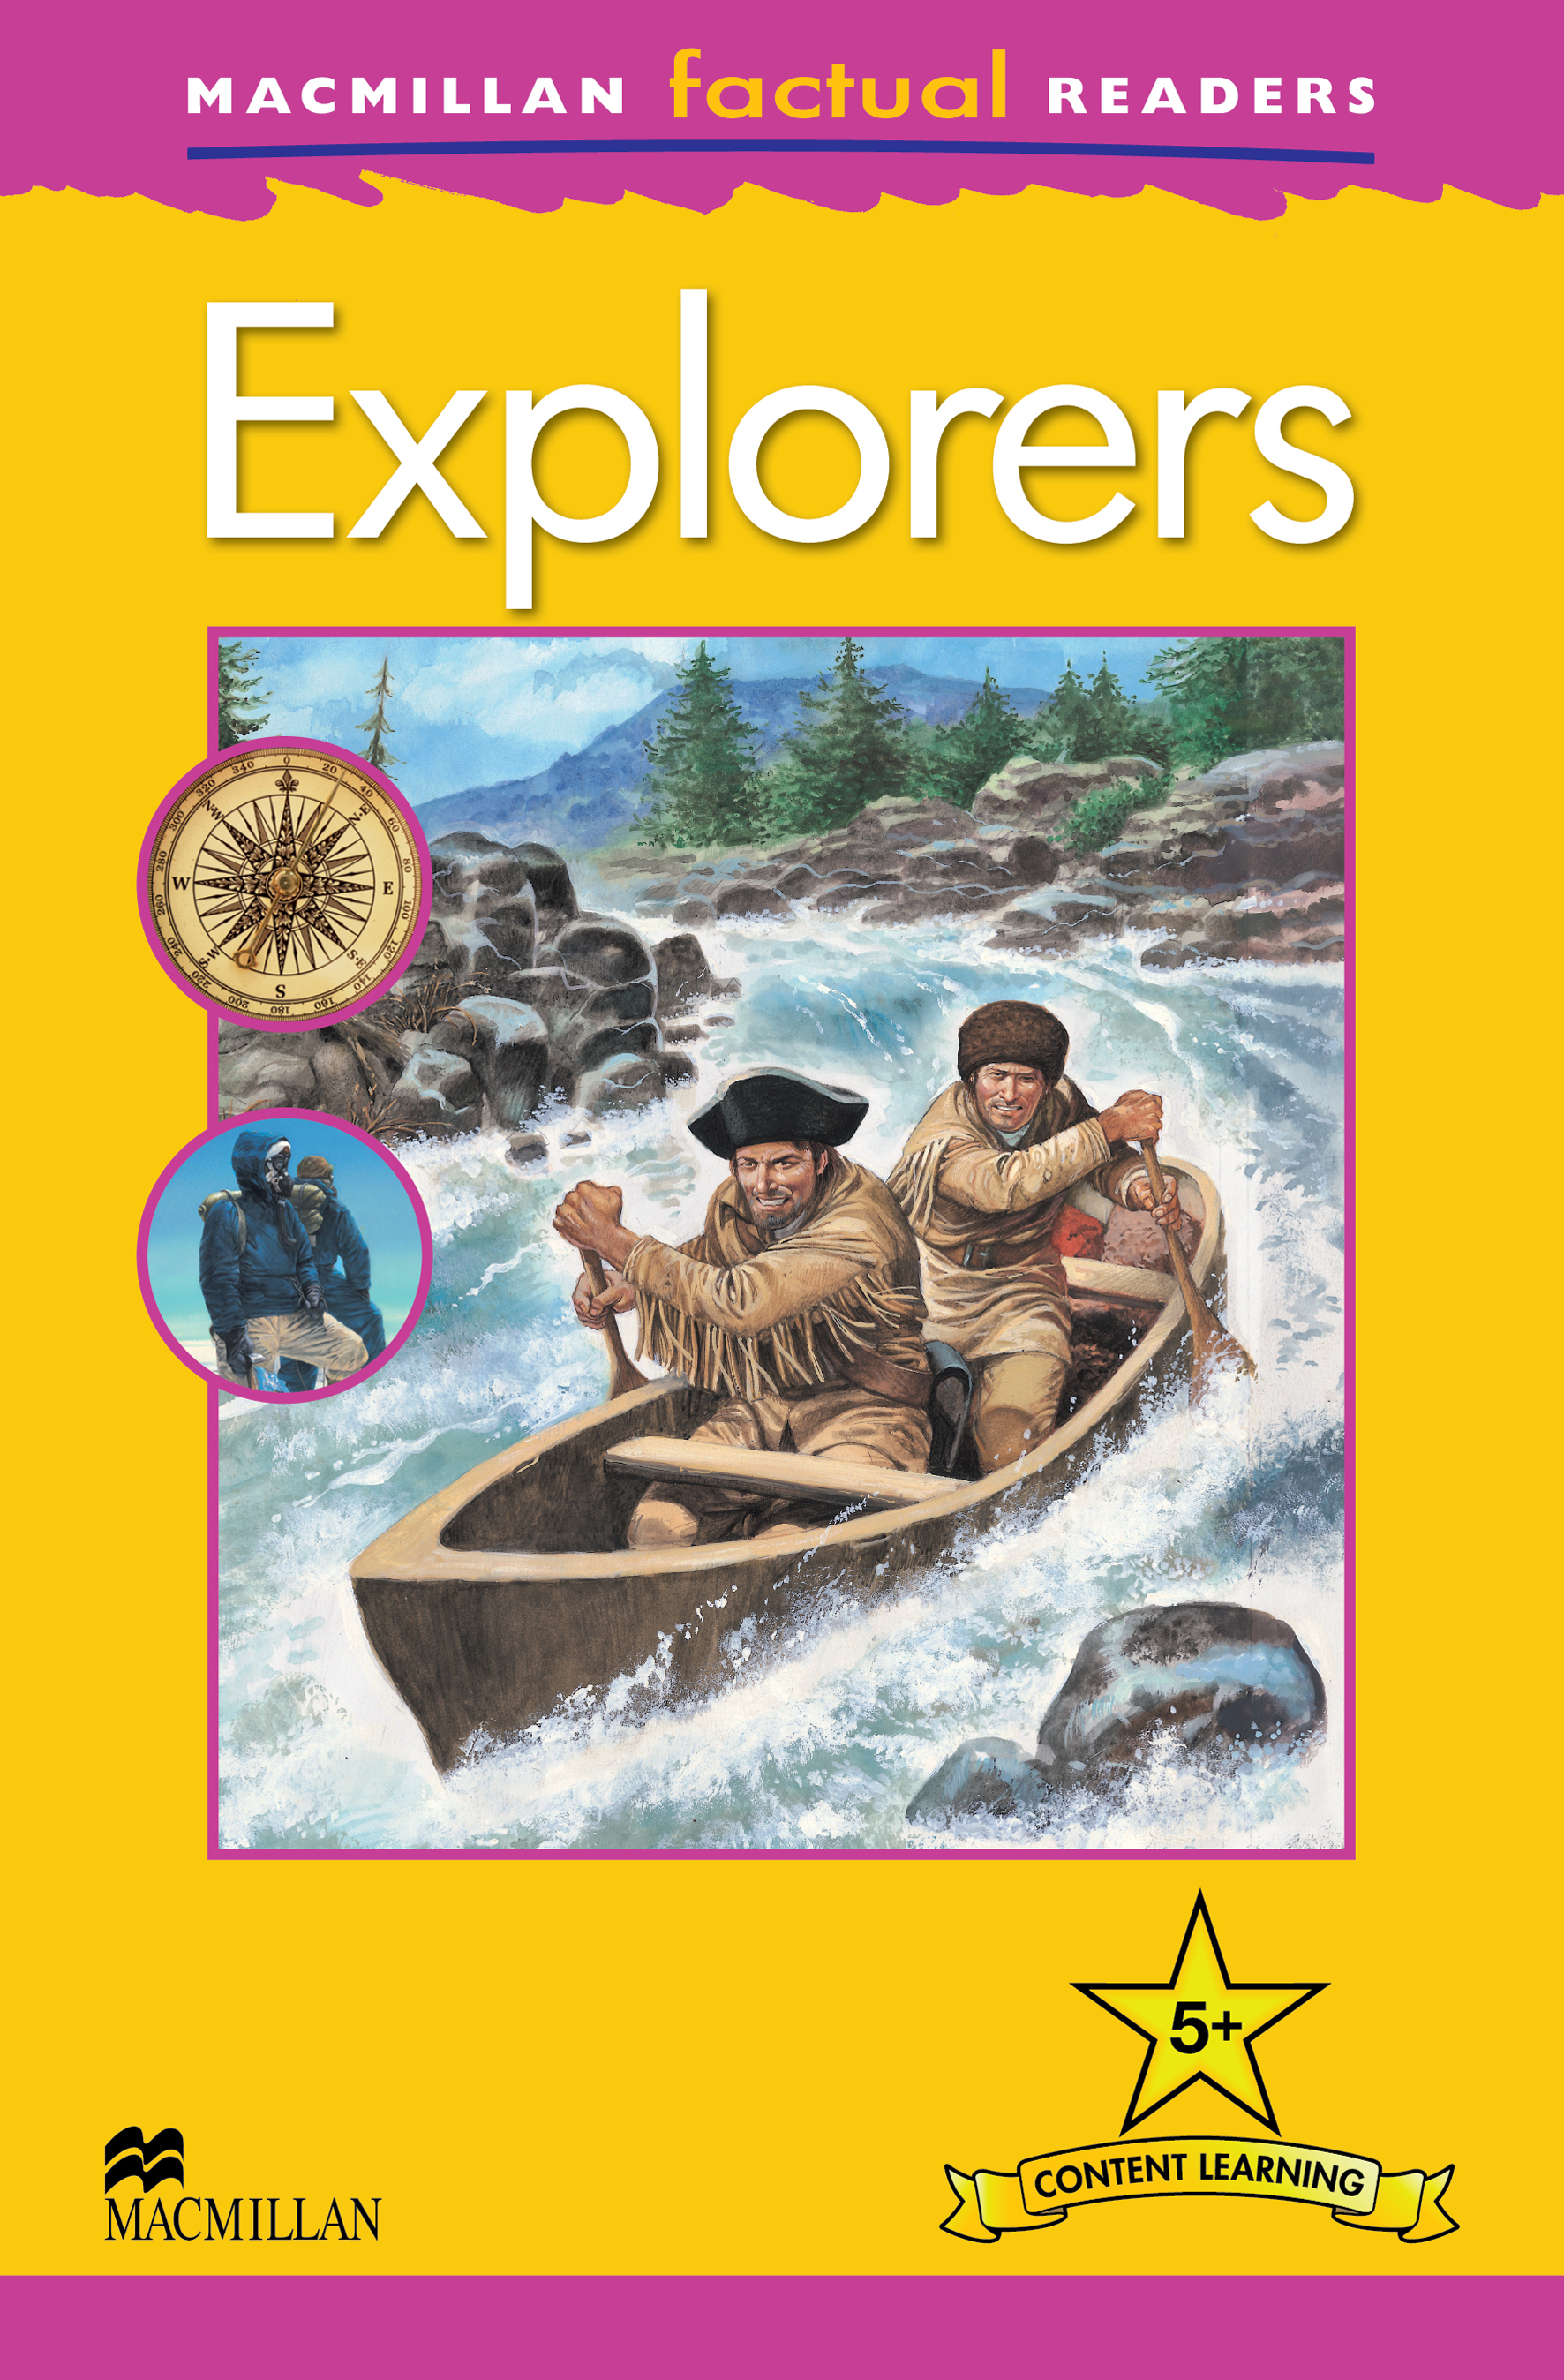 Macmillan Factual Readers: Explorers